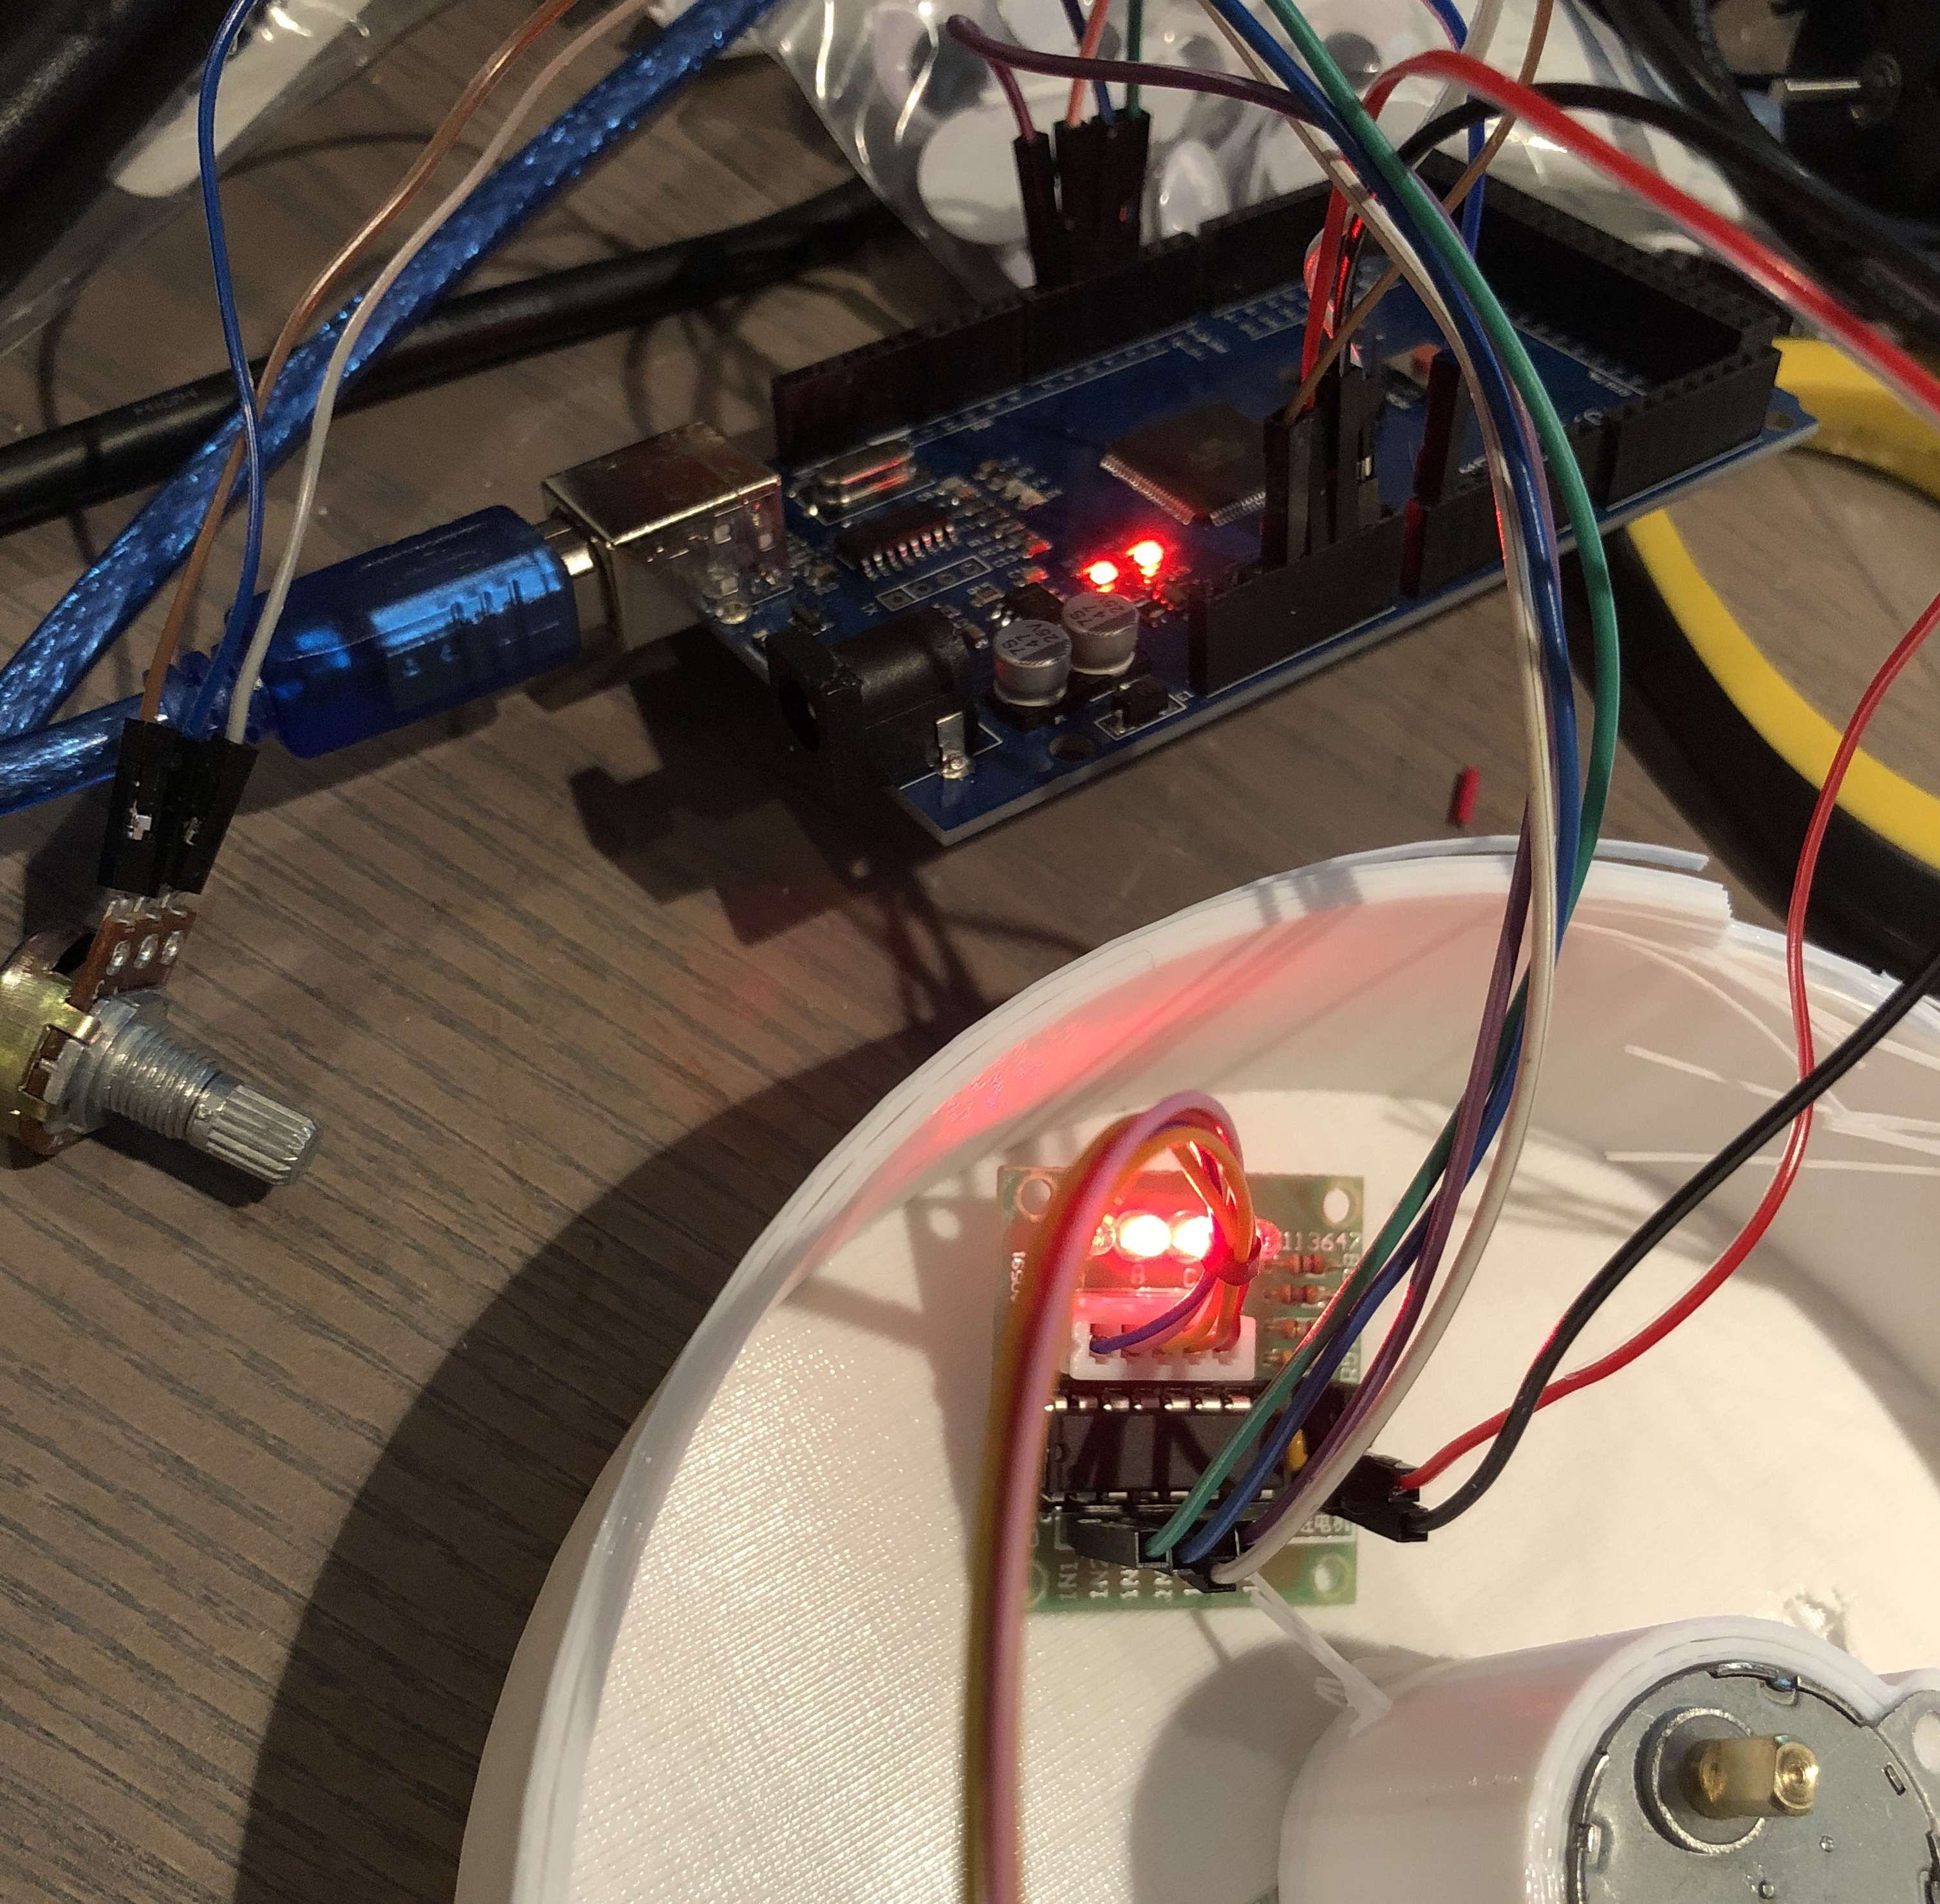 28YBJ-48 and the ULN2003. Stepper motor under Arduino control